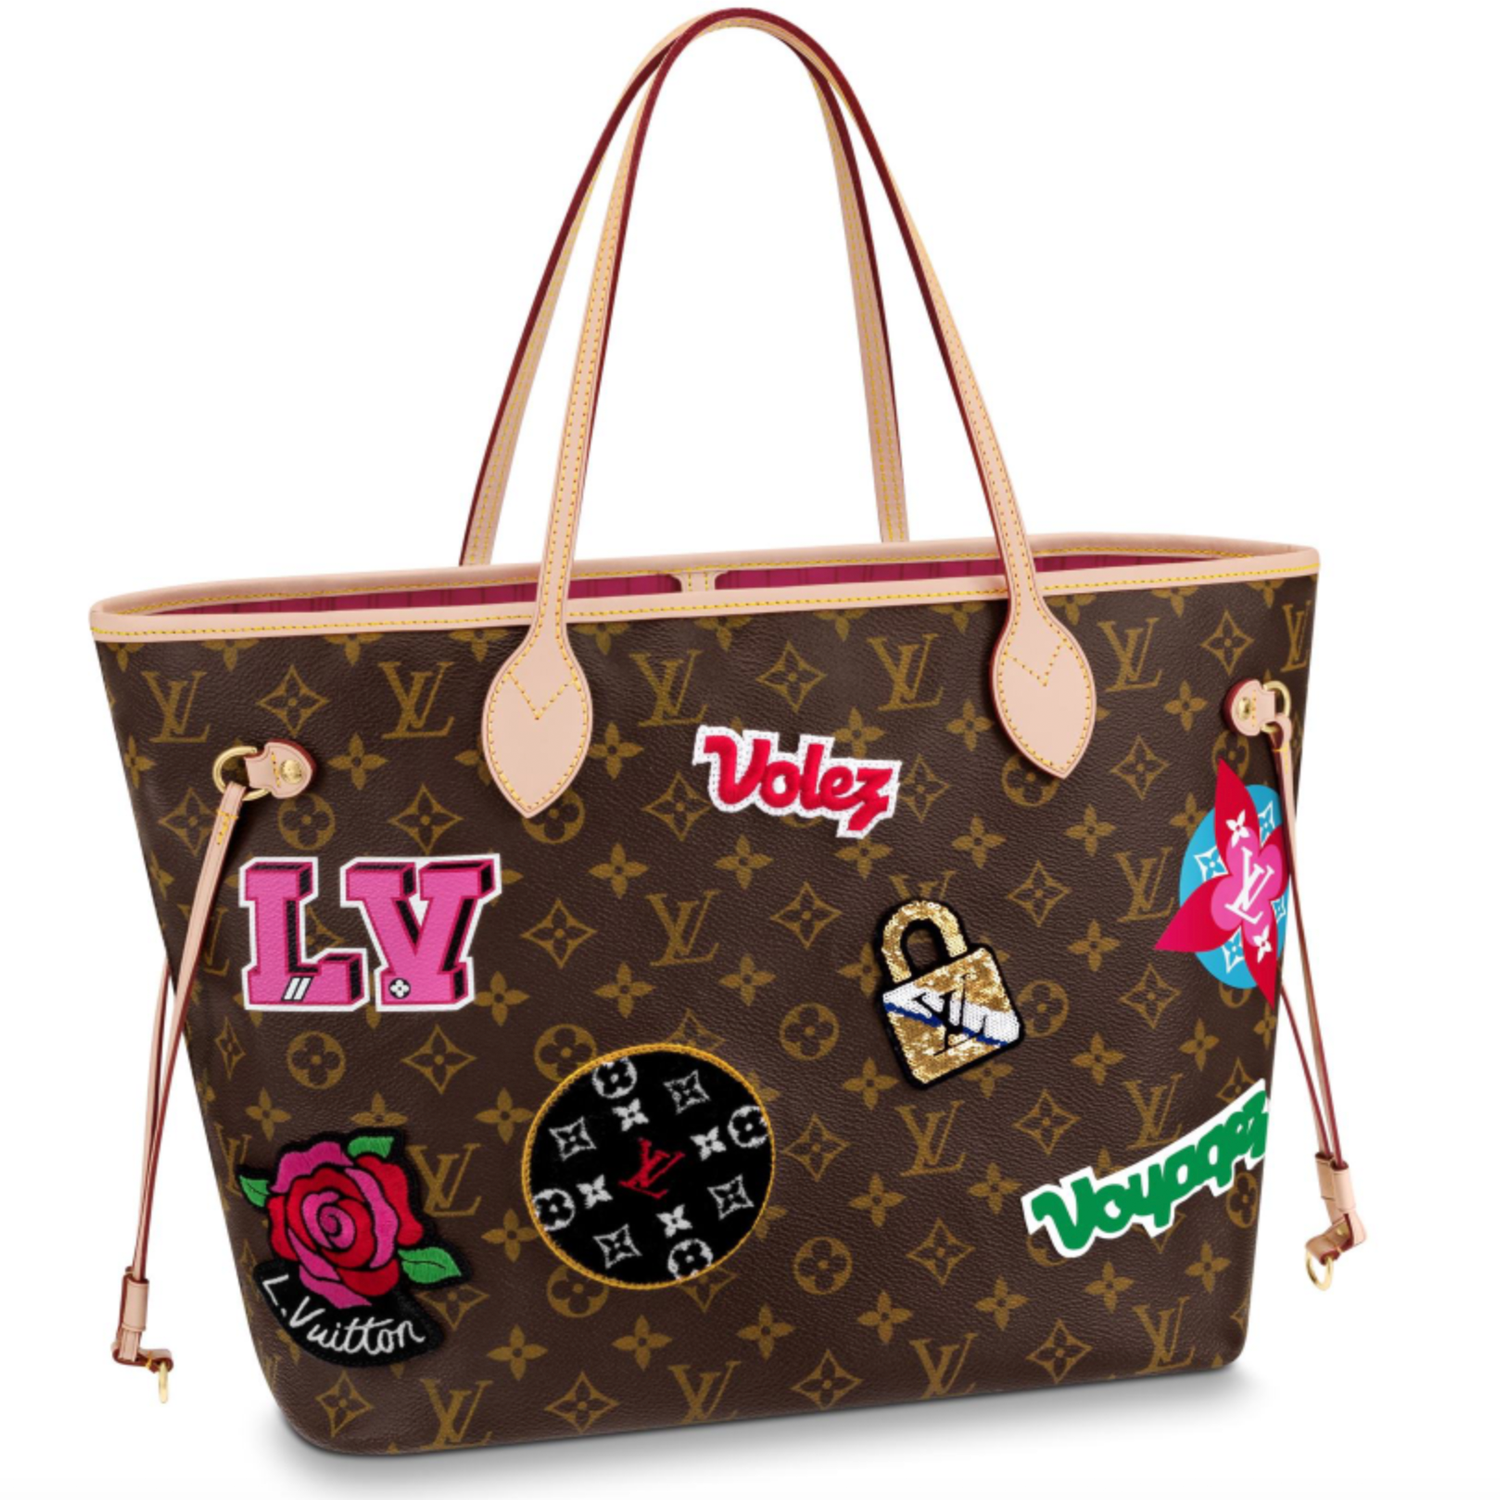 NEVERFULL MM - €1390 $1950M43988MONOGRAM PATCHES